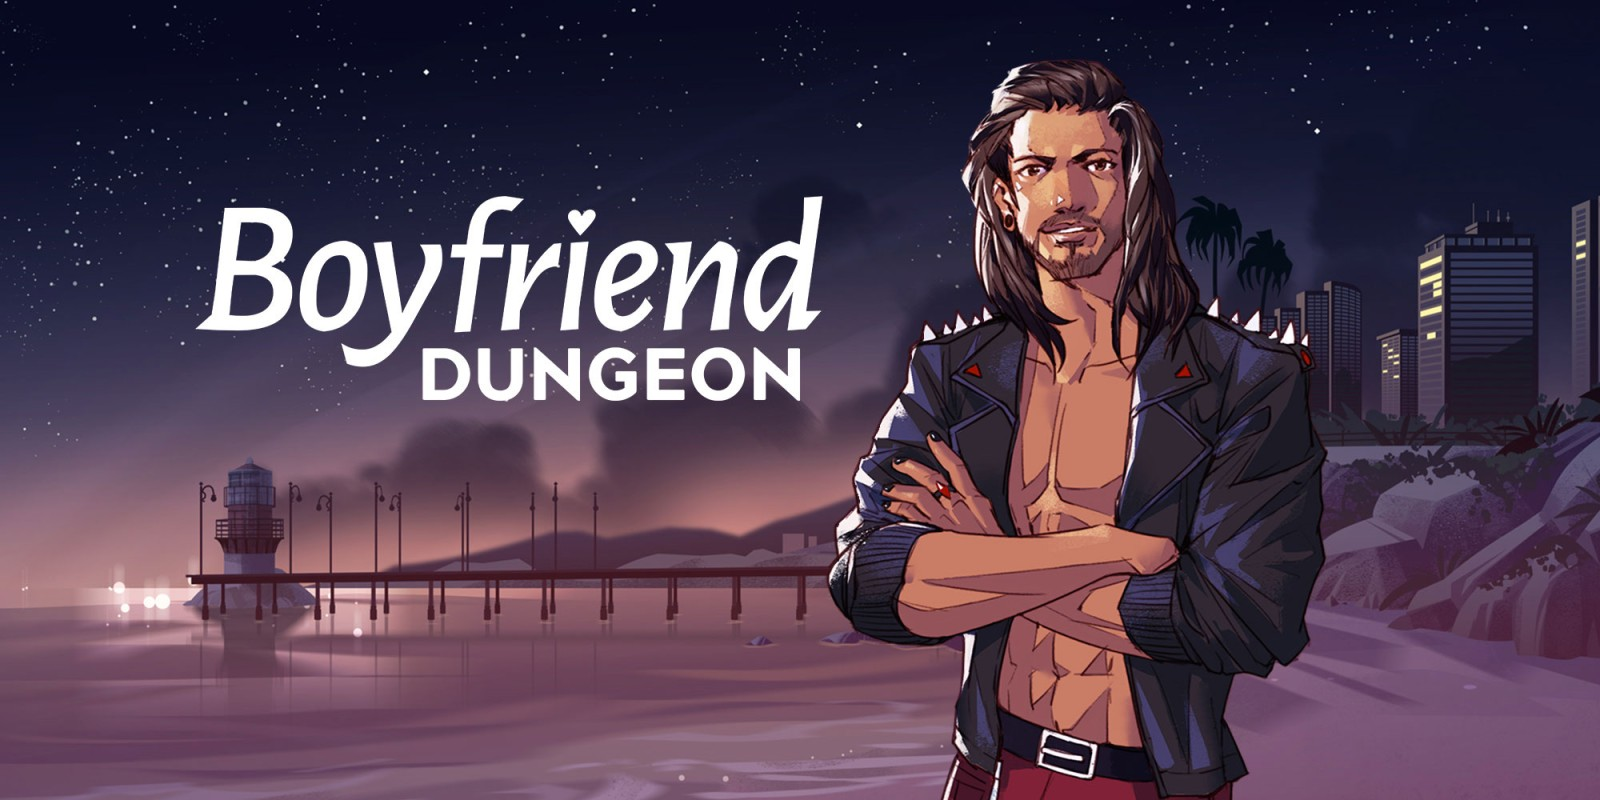 Boyfriend Dungeon stats and facts